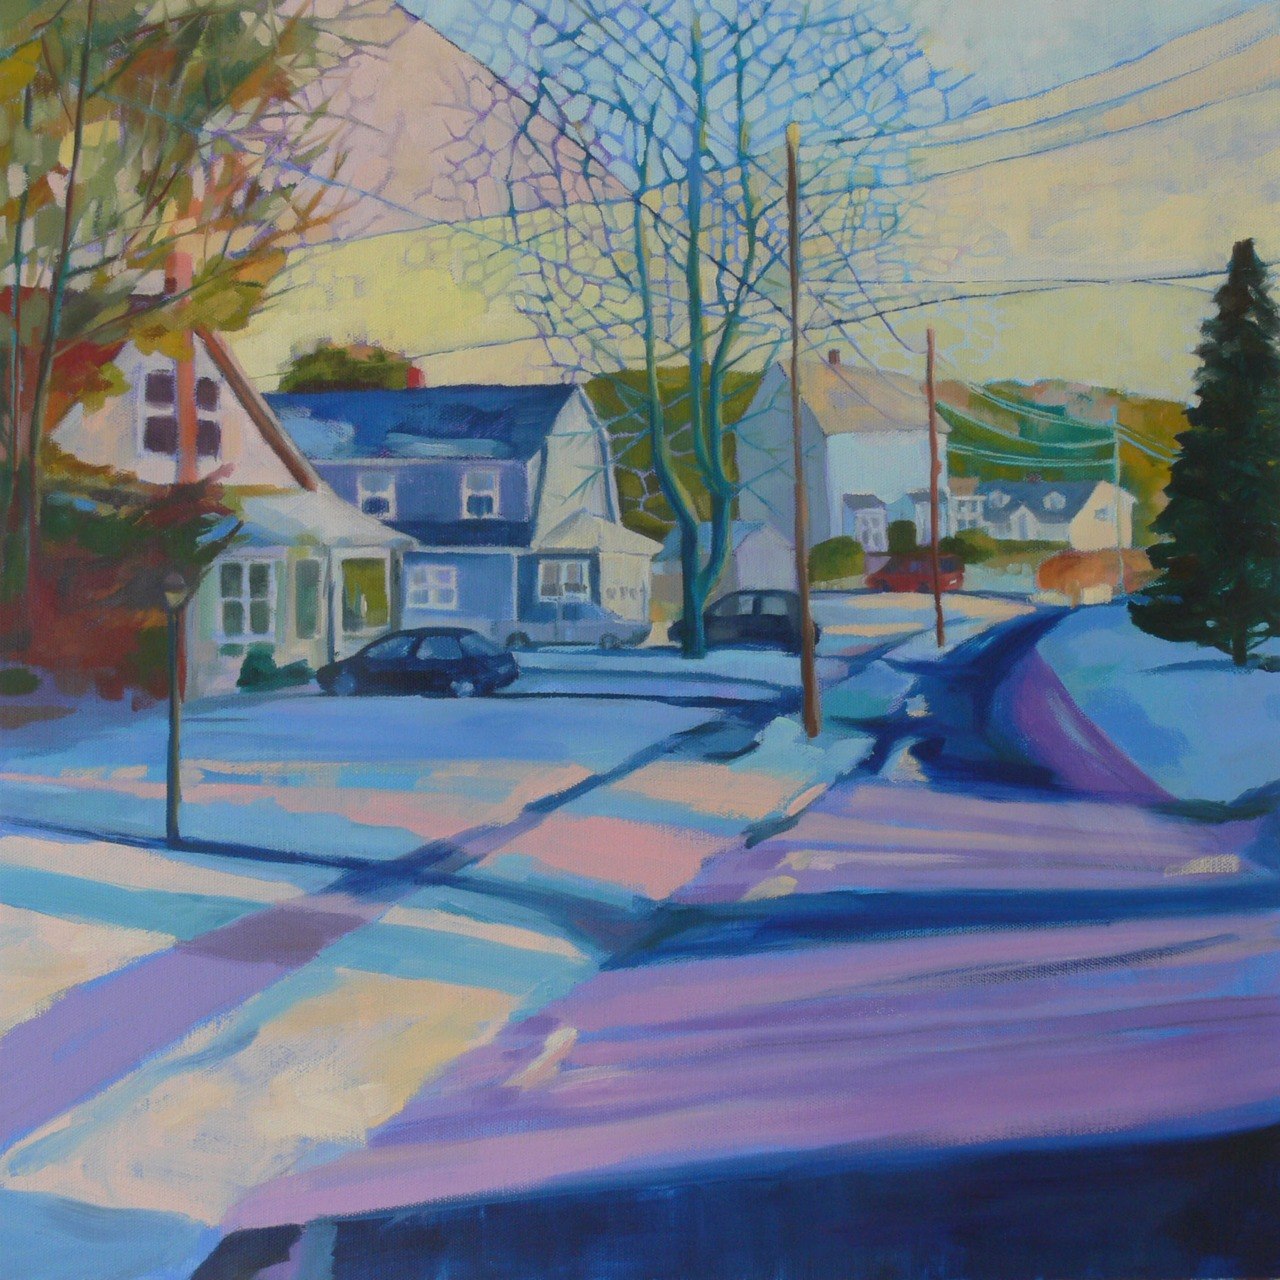 """24""""x24"""", oil on canvas   This is me trying to be inspired by the snow. Actually, it's the power lines and the streaks of light that really got me going. And of course the trees. Always the trees."""